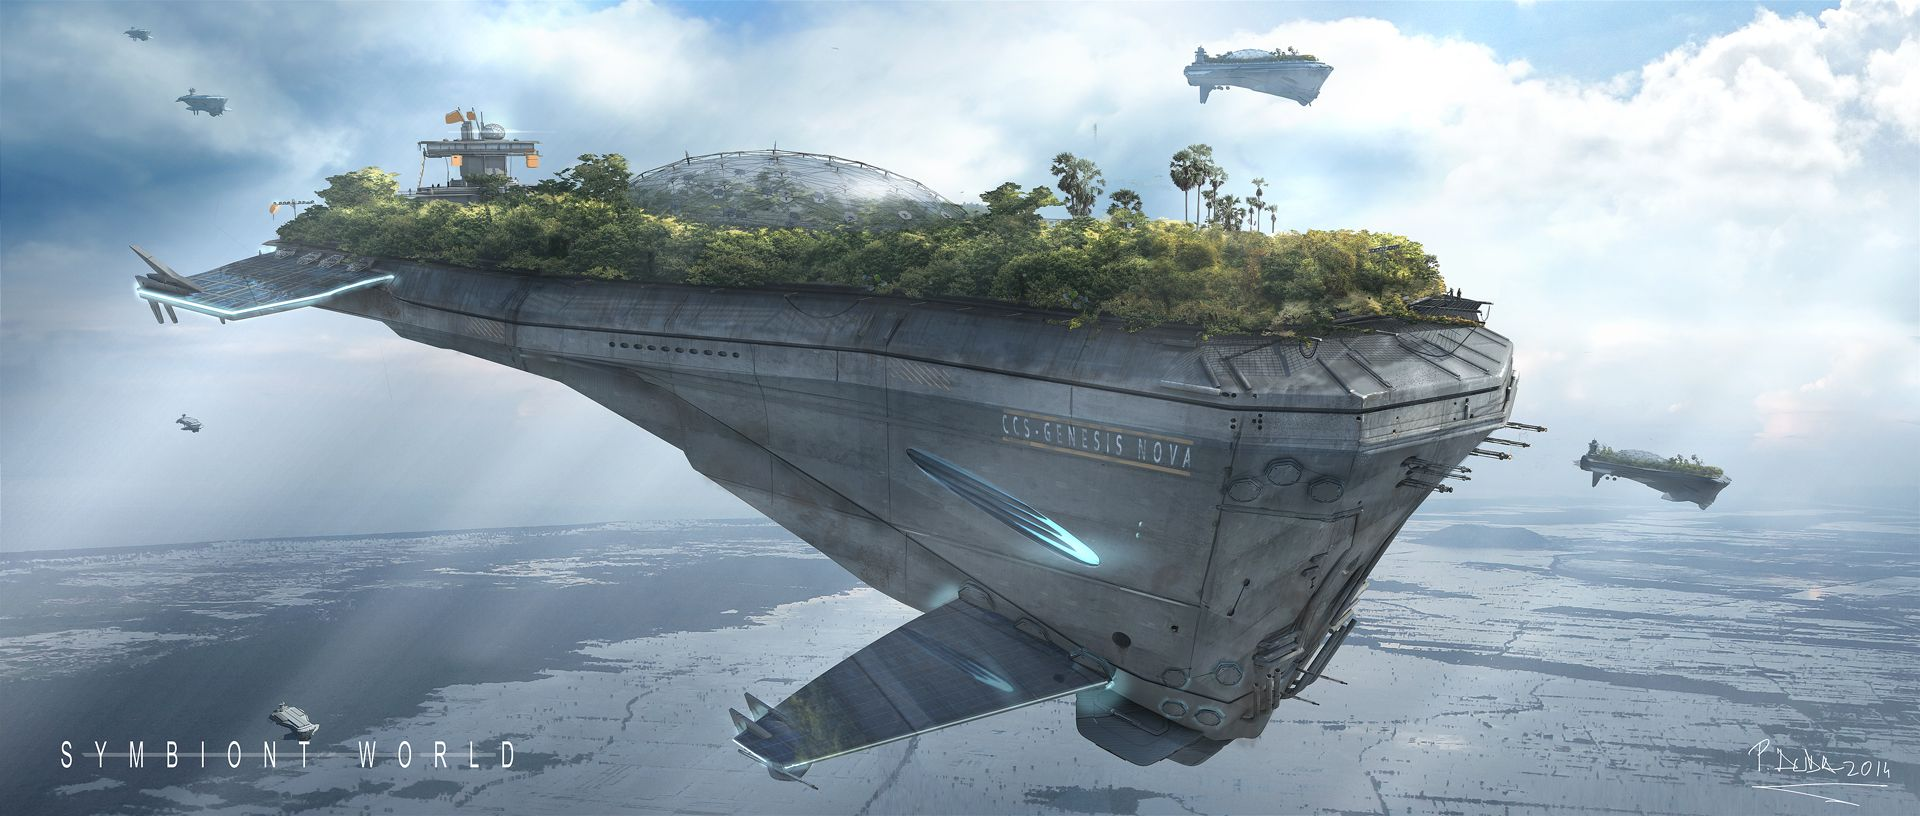 science fiction the vessel for fatalism essay Science fiction usually employs a sense of wonder at reality, the same wonder actual scientific exploration  thank you for this inspired and inspiring essay.